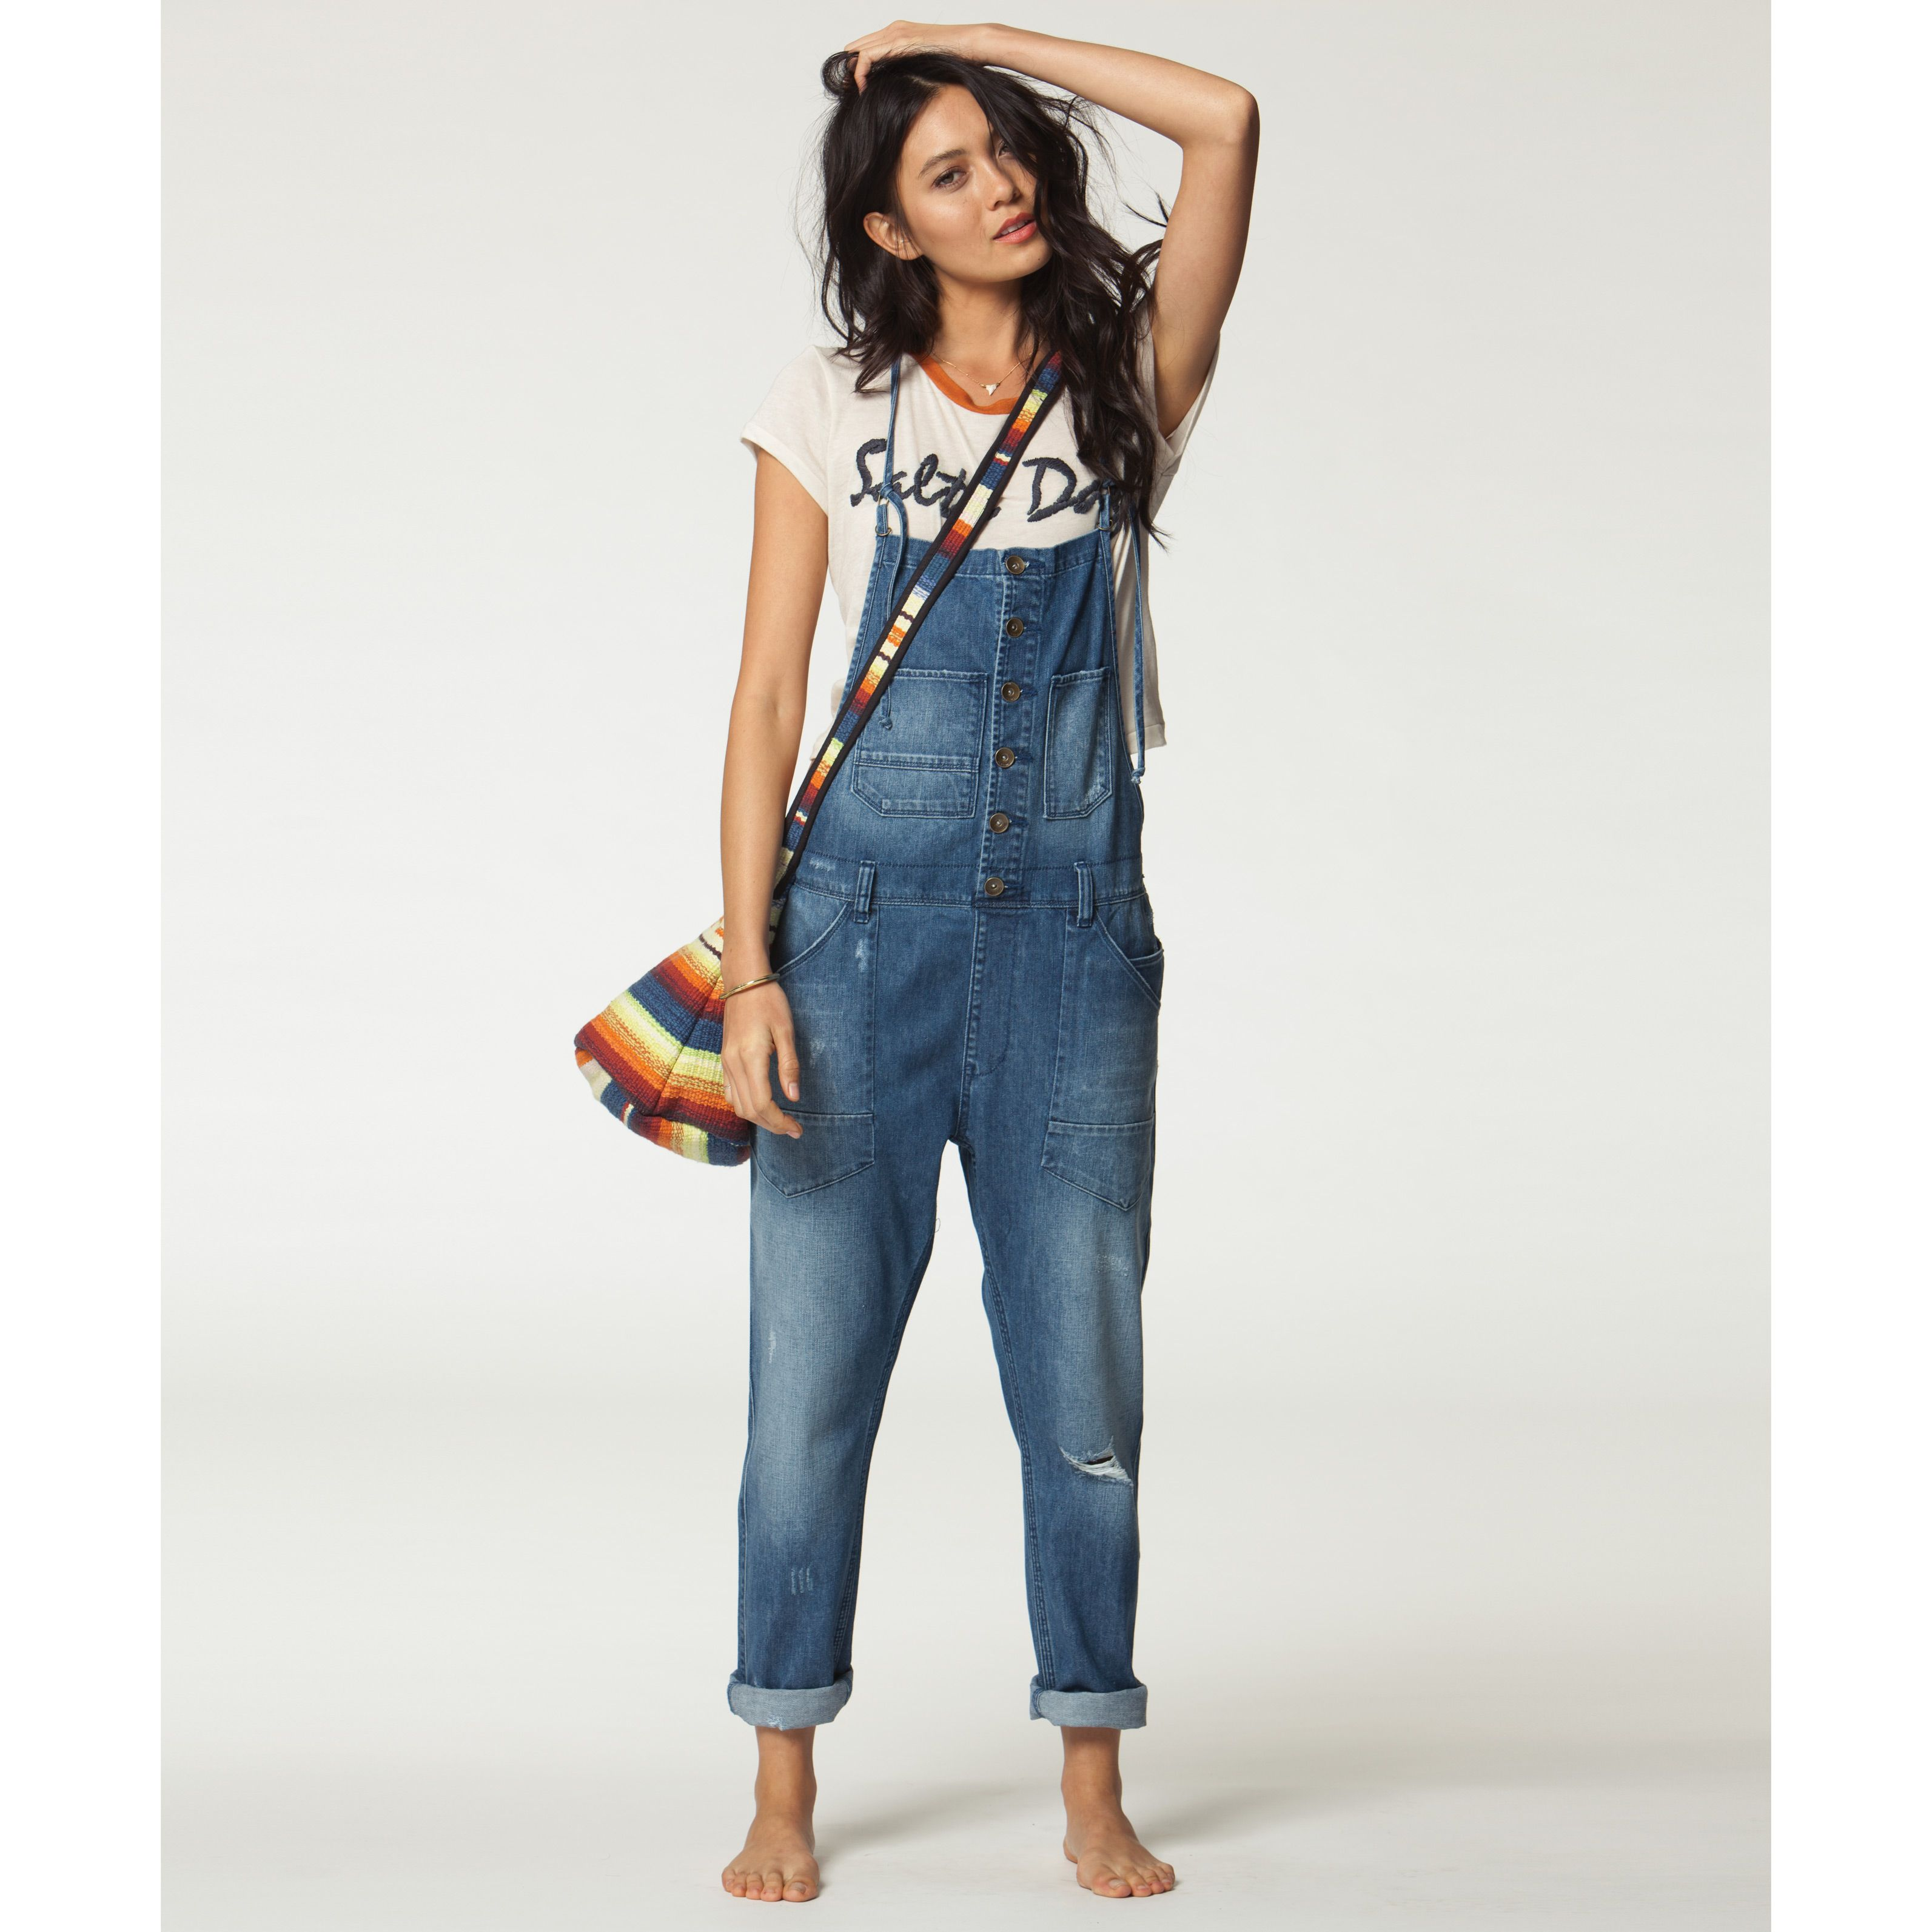 5bea1a468 Over It All Denim Overalls